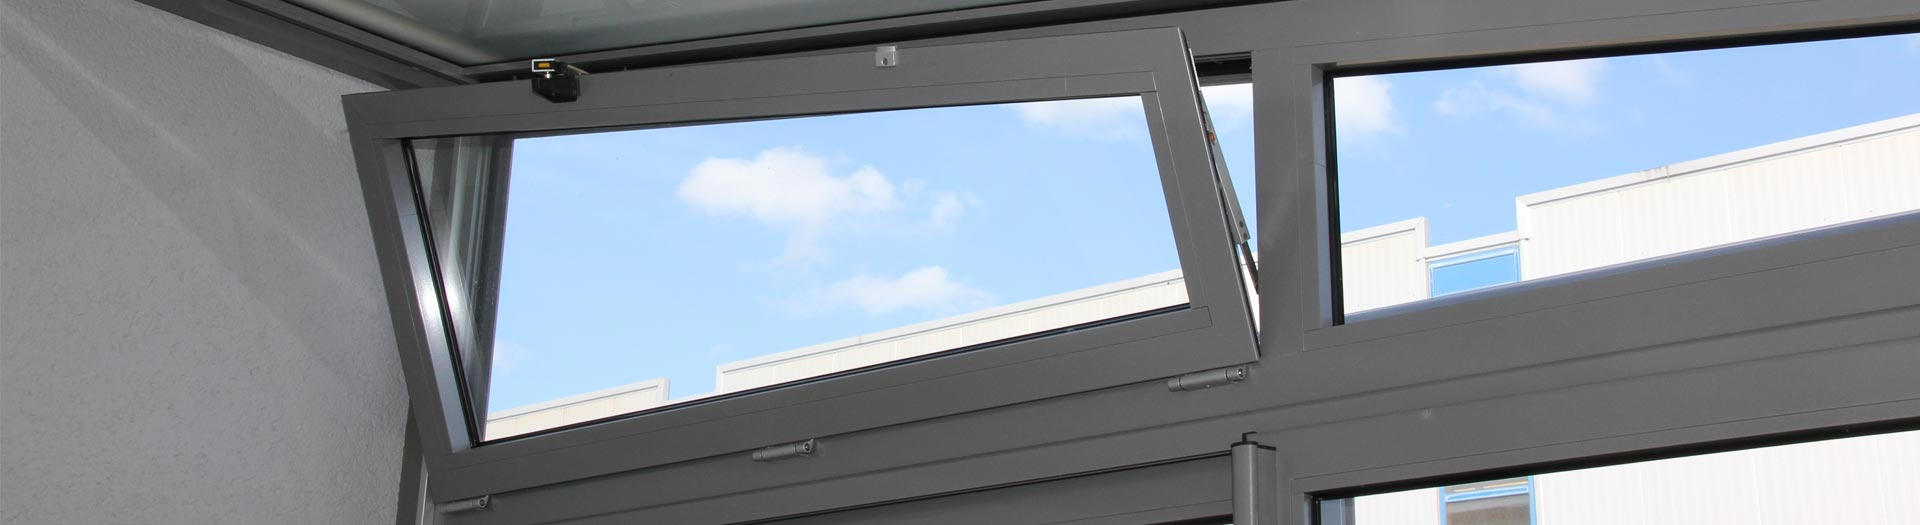 Fenster Innovationen